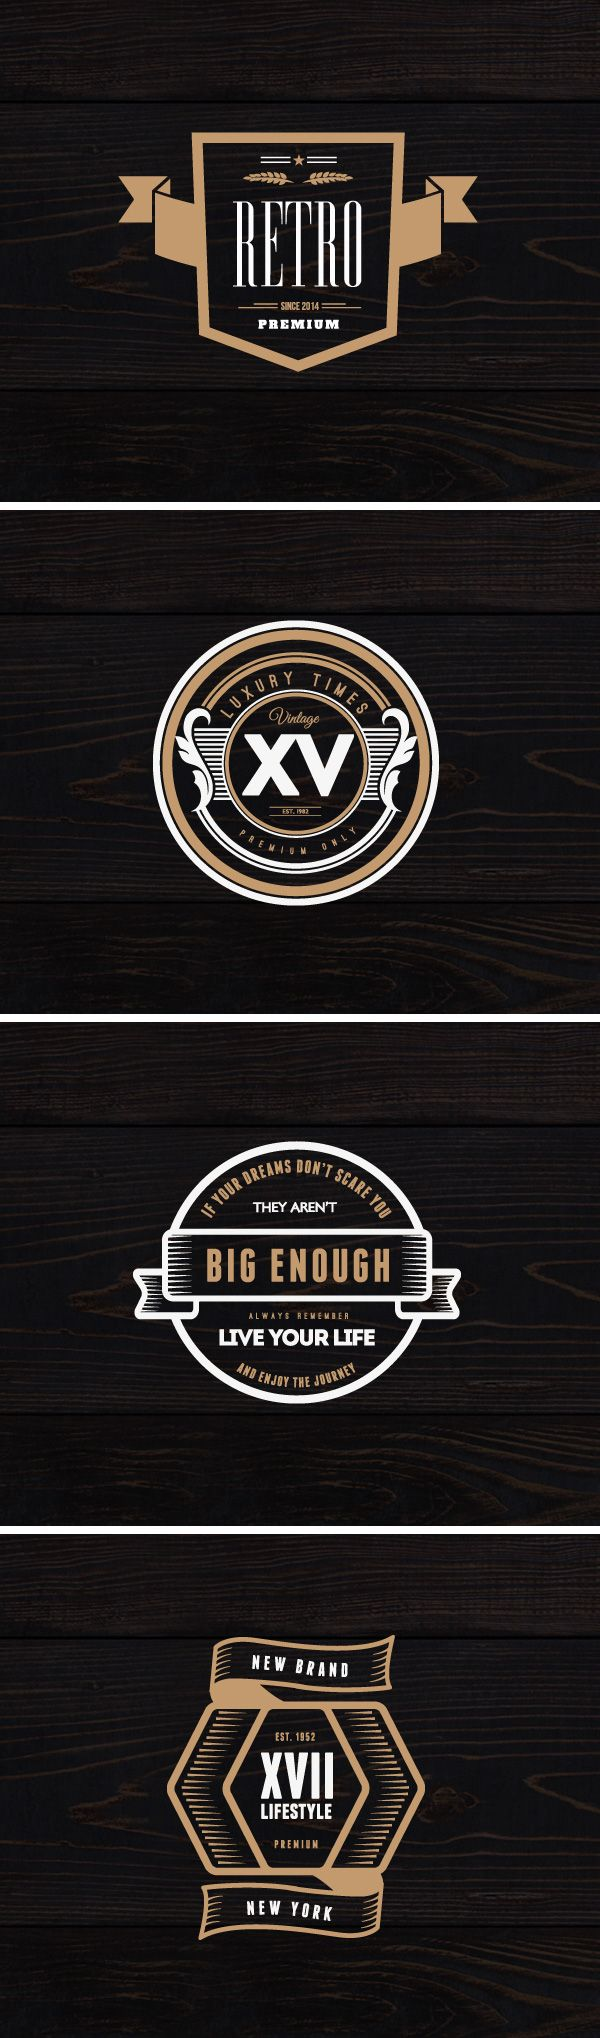 Today's special is a great set of 4 vintage logos created by DesignDistrict. You can use them on labels, posters, t-shirts...